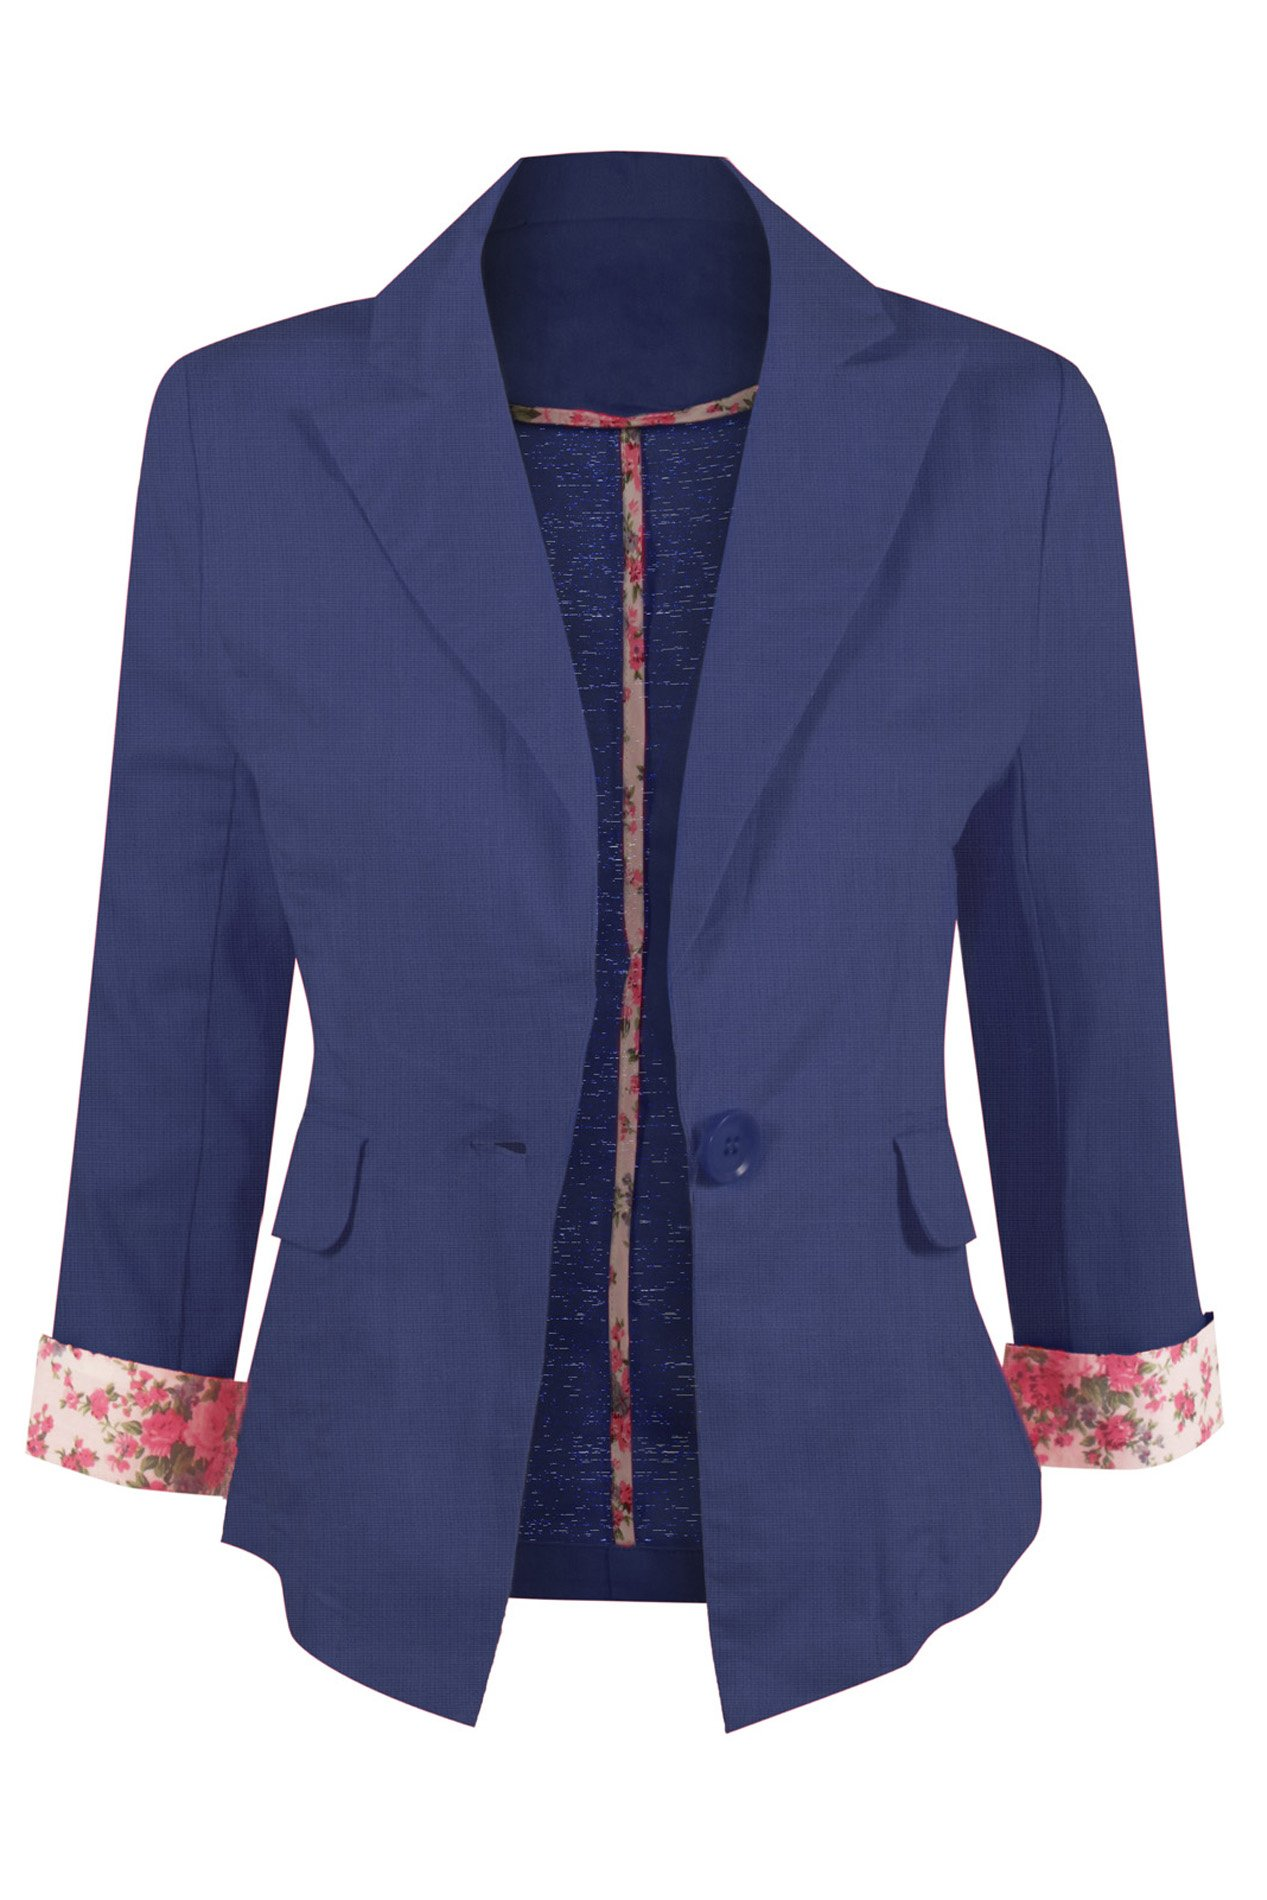 HOT FROM HOLLYWOOD Contemporary Ultra Lightweight Linen Blend Blazer with Floral Print 3/4 Sleeves